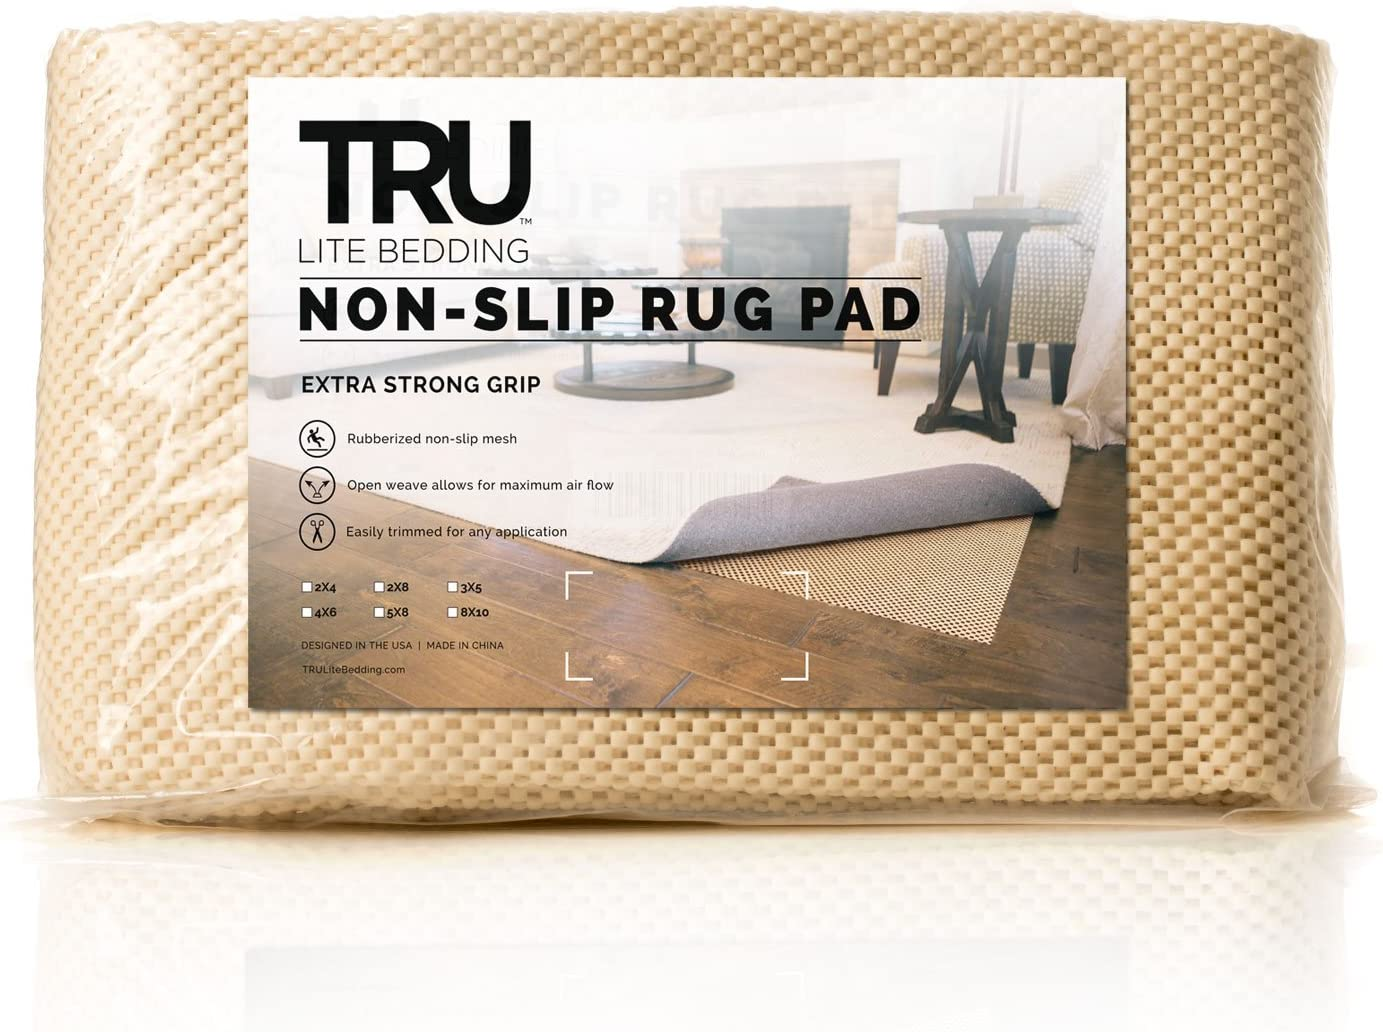 TRU Lite Extra Strong Rug Gripper - Non Slip Furniture Pad - Indoor Carpet Pad for Hardwood Floors - Anti Skid Mat - Anchors Rugs to Floors - Trim to fit Any Size - 2' x 4'